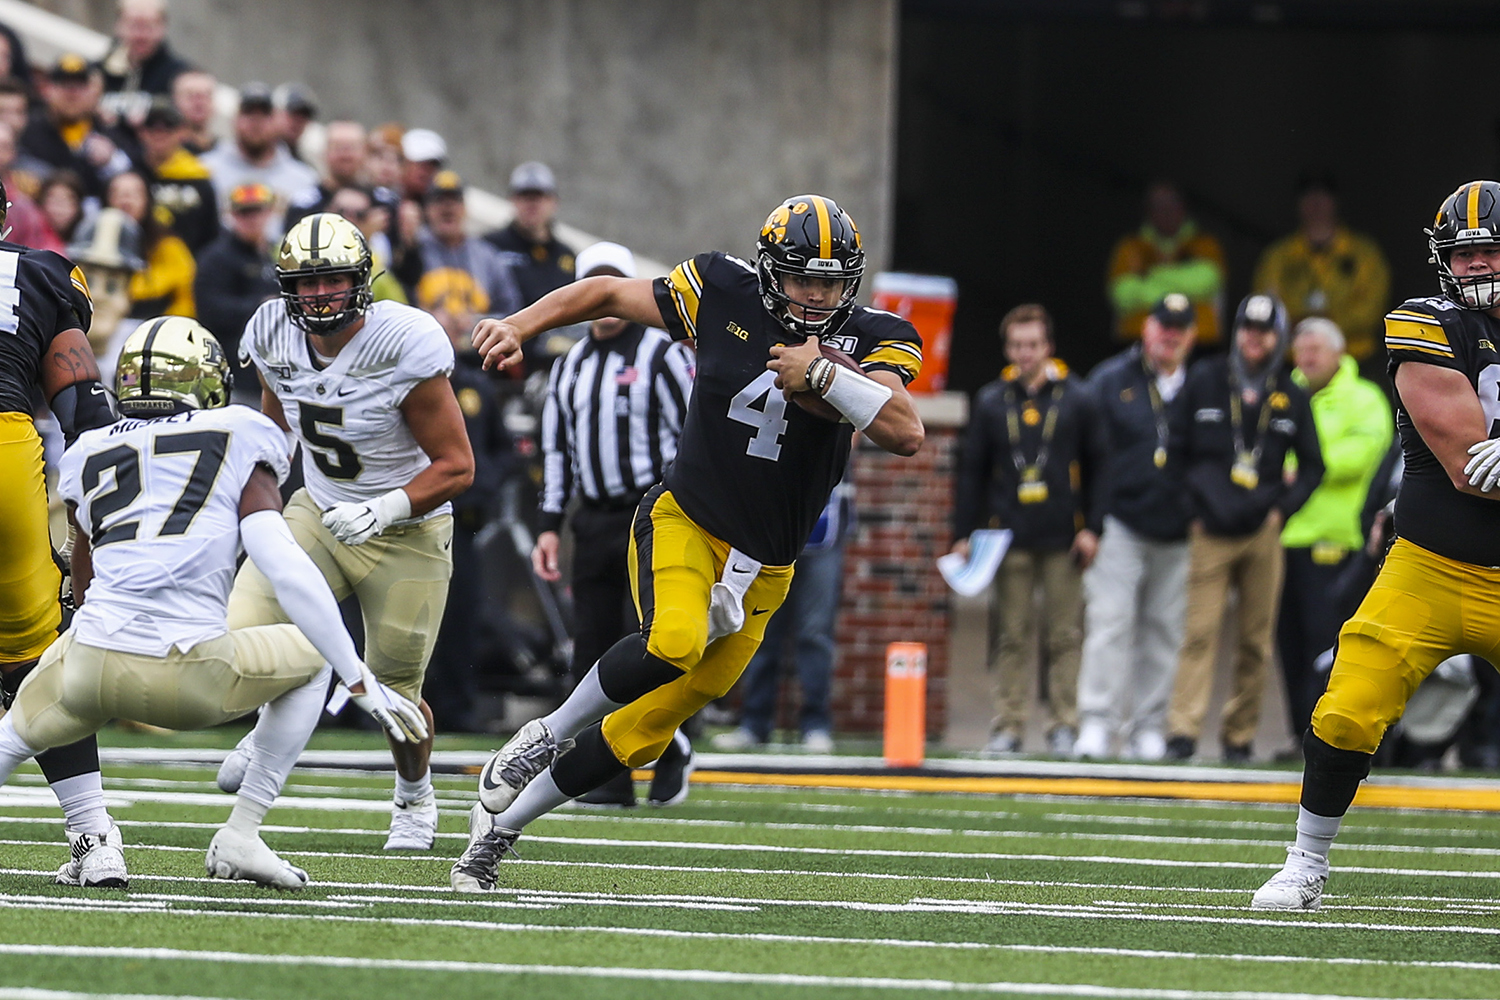 Iowa quarterback Nate Stanley runs the ball during the Iowa football game against Purdue at Kinnick Stadium on Saturday, Oct. 19, 2019. The Hawkeyes defeated the Boilermakers 26-20.